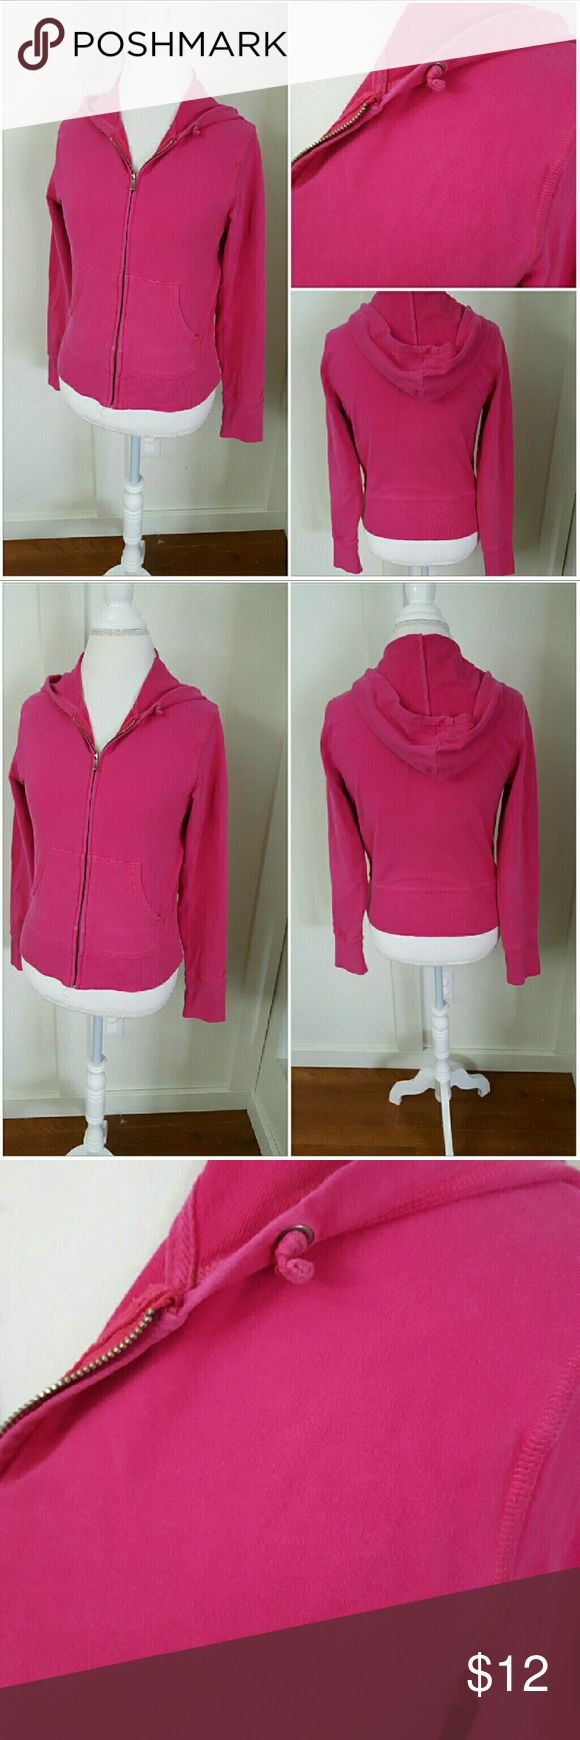 CHAMPION MEDIUM PINK ZIP UP LONG SLEEVE HOODIE Champion medium pink hoodie. Zip up. Long sleeves. Pre-owned and in good condition. 96% Cotton 4% Spandex Champion Tops Sweatshirts & Hoodies